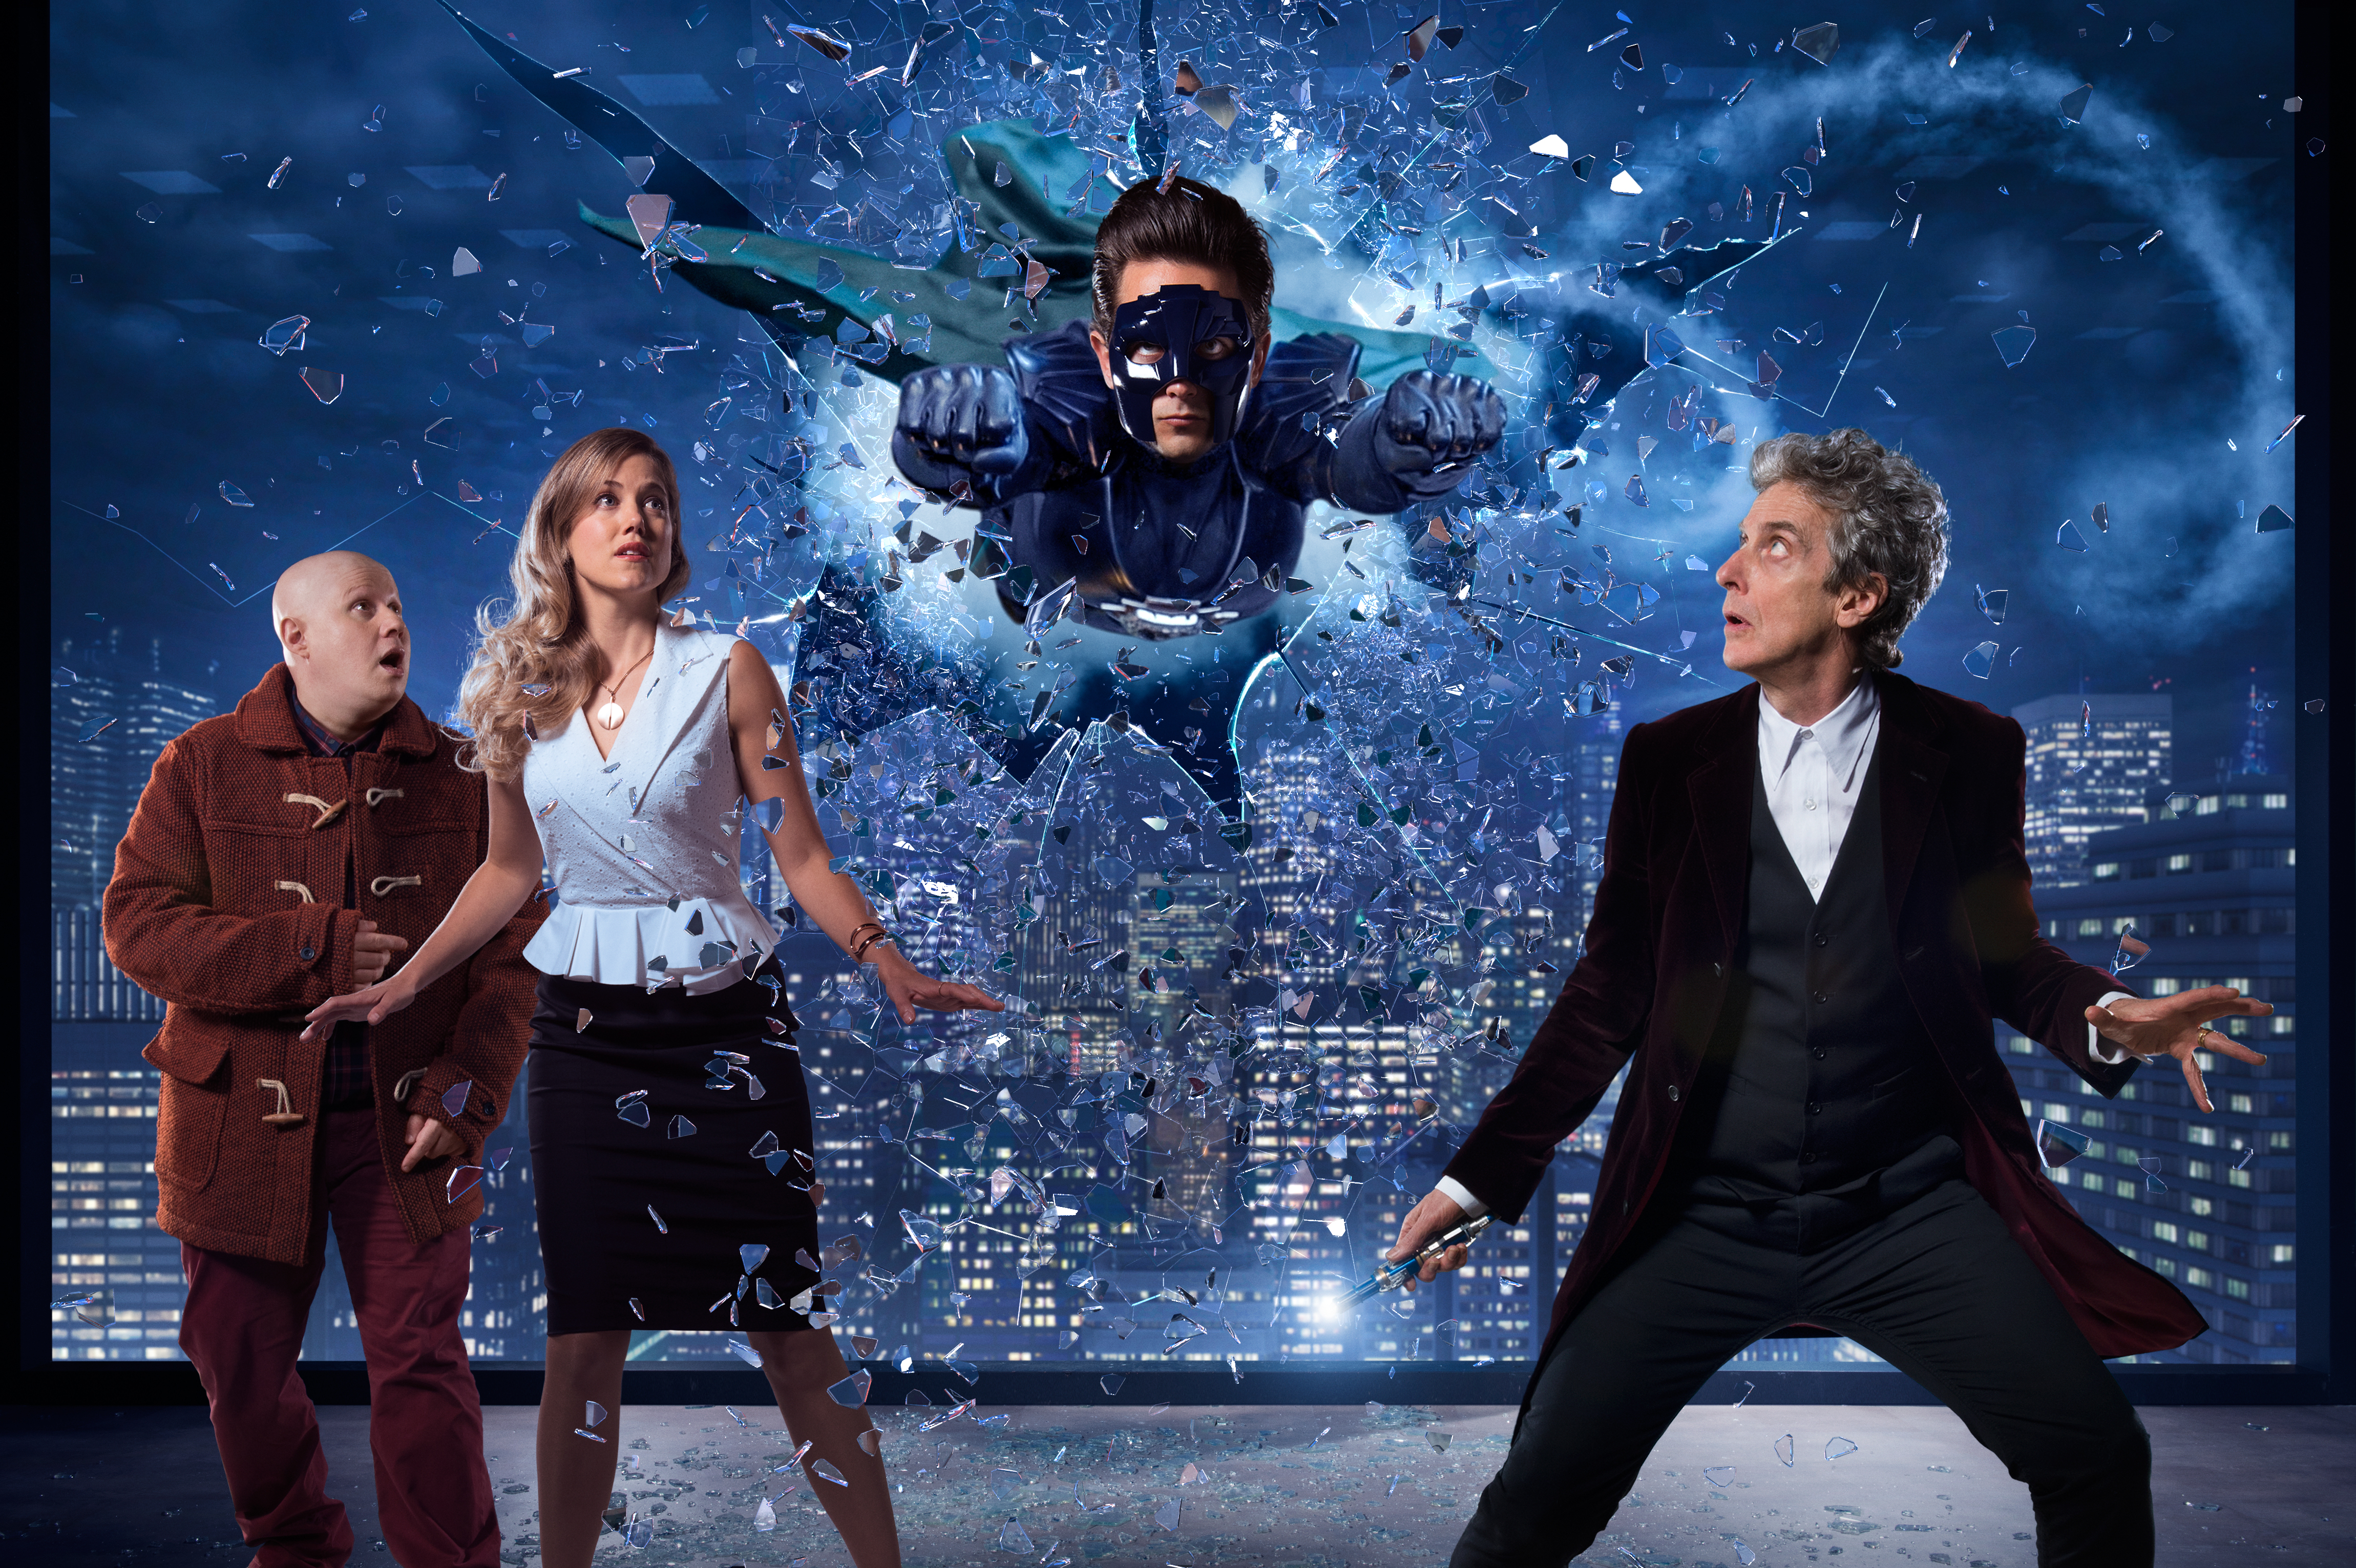 Picture shows: Matt Lucas as Nardole, Charity Wakefield as Lucy, Justin Chatwin as The Ghost and Peter Capaldi as The Doctor